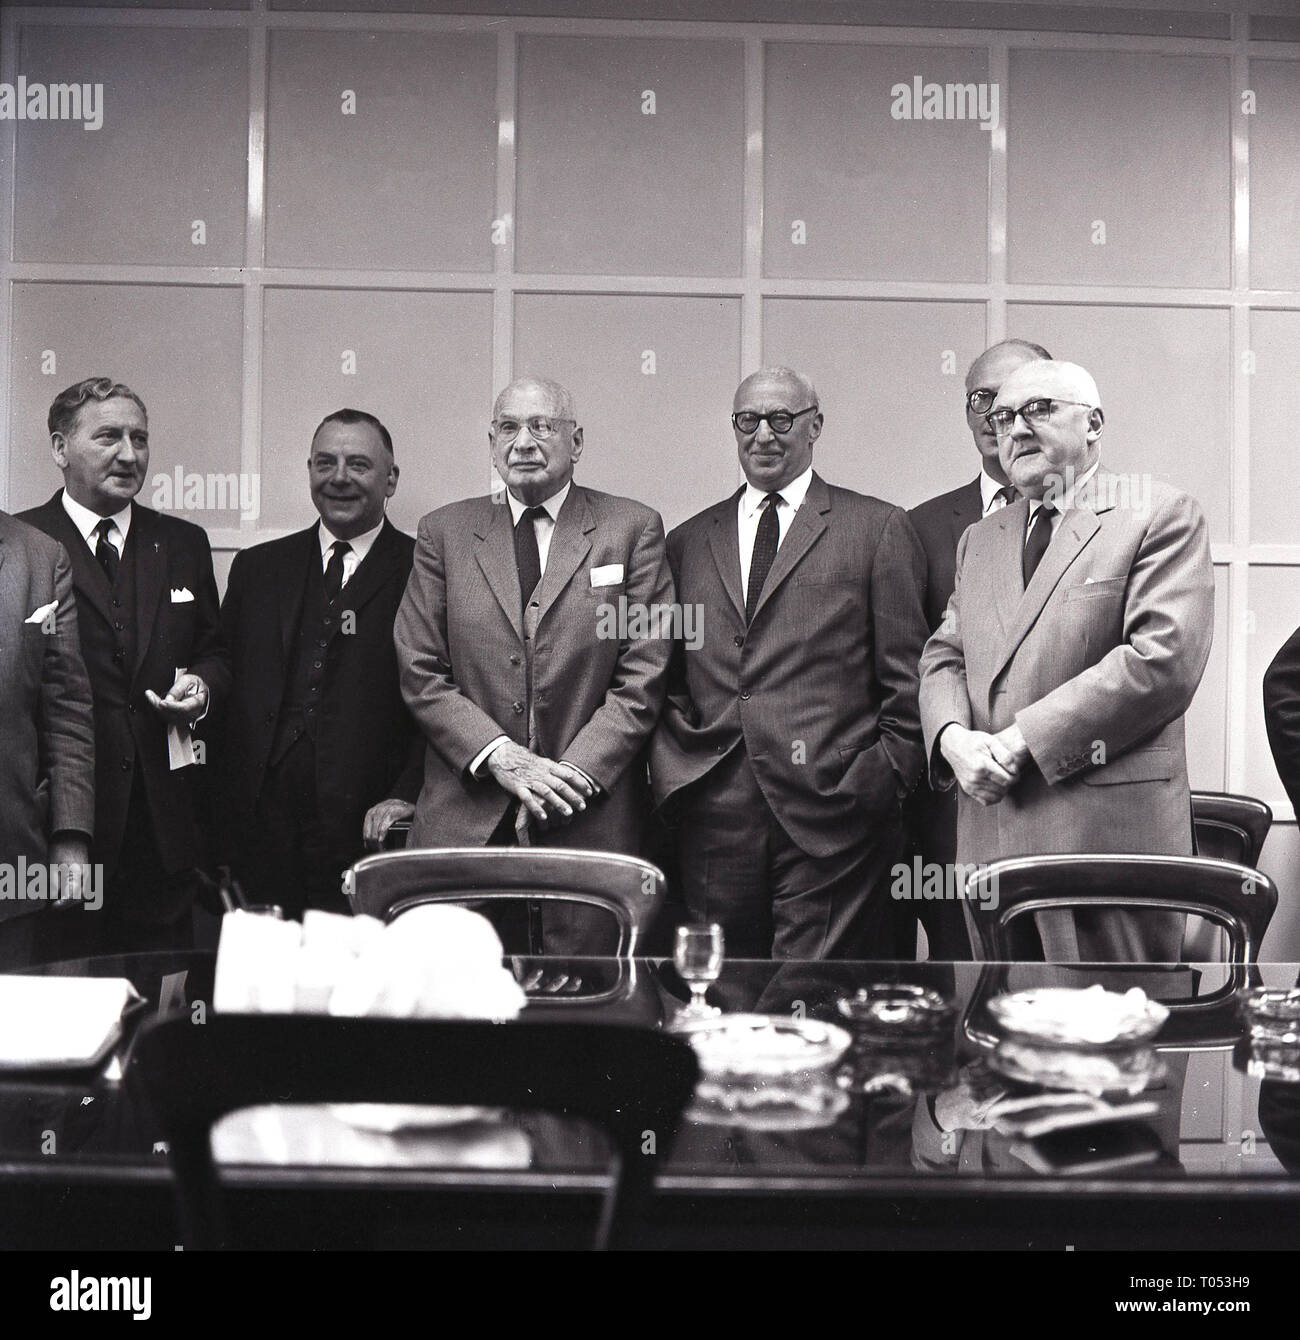 1964, Football club directors in the boadroom, England, UK. In era clubs were owned by football loving businessmen from the local community who had sone well and wanted to put something back into the game. Stock Photo